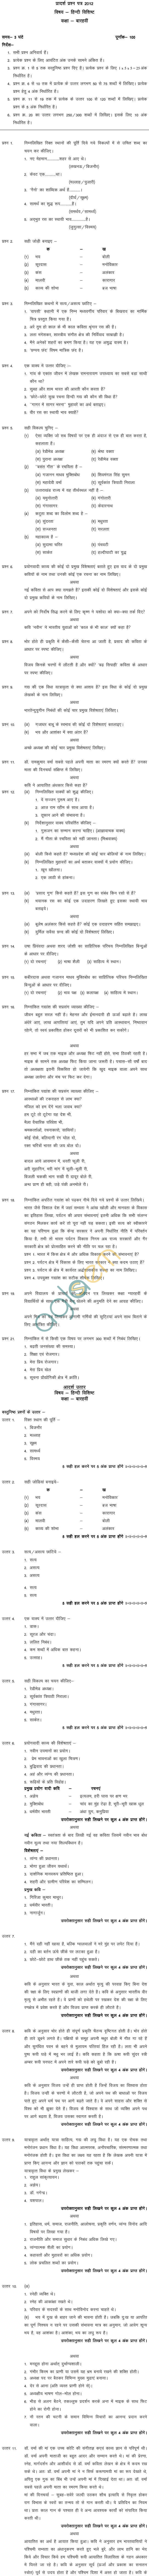 MP Board Class XII Hindi Special Model Questions & Answers - Set 3